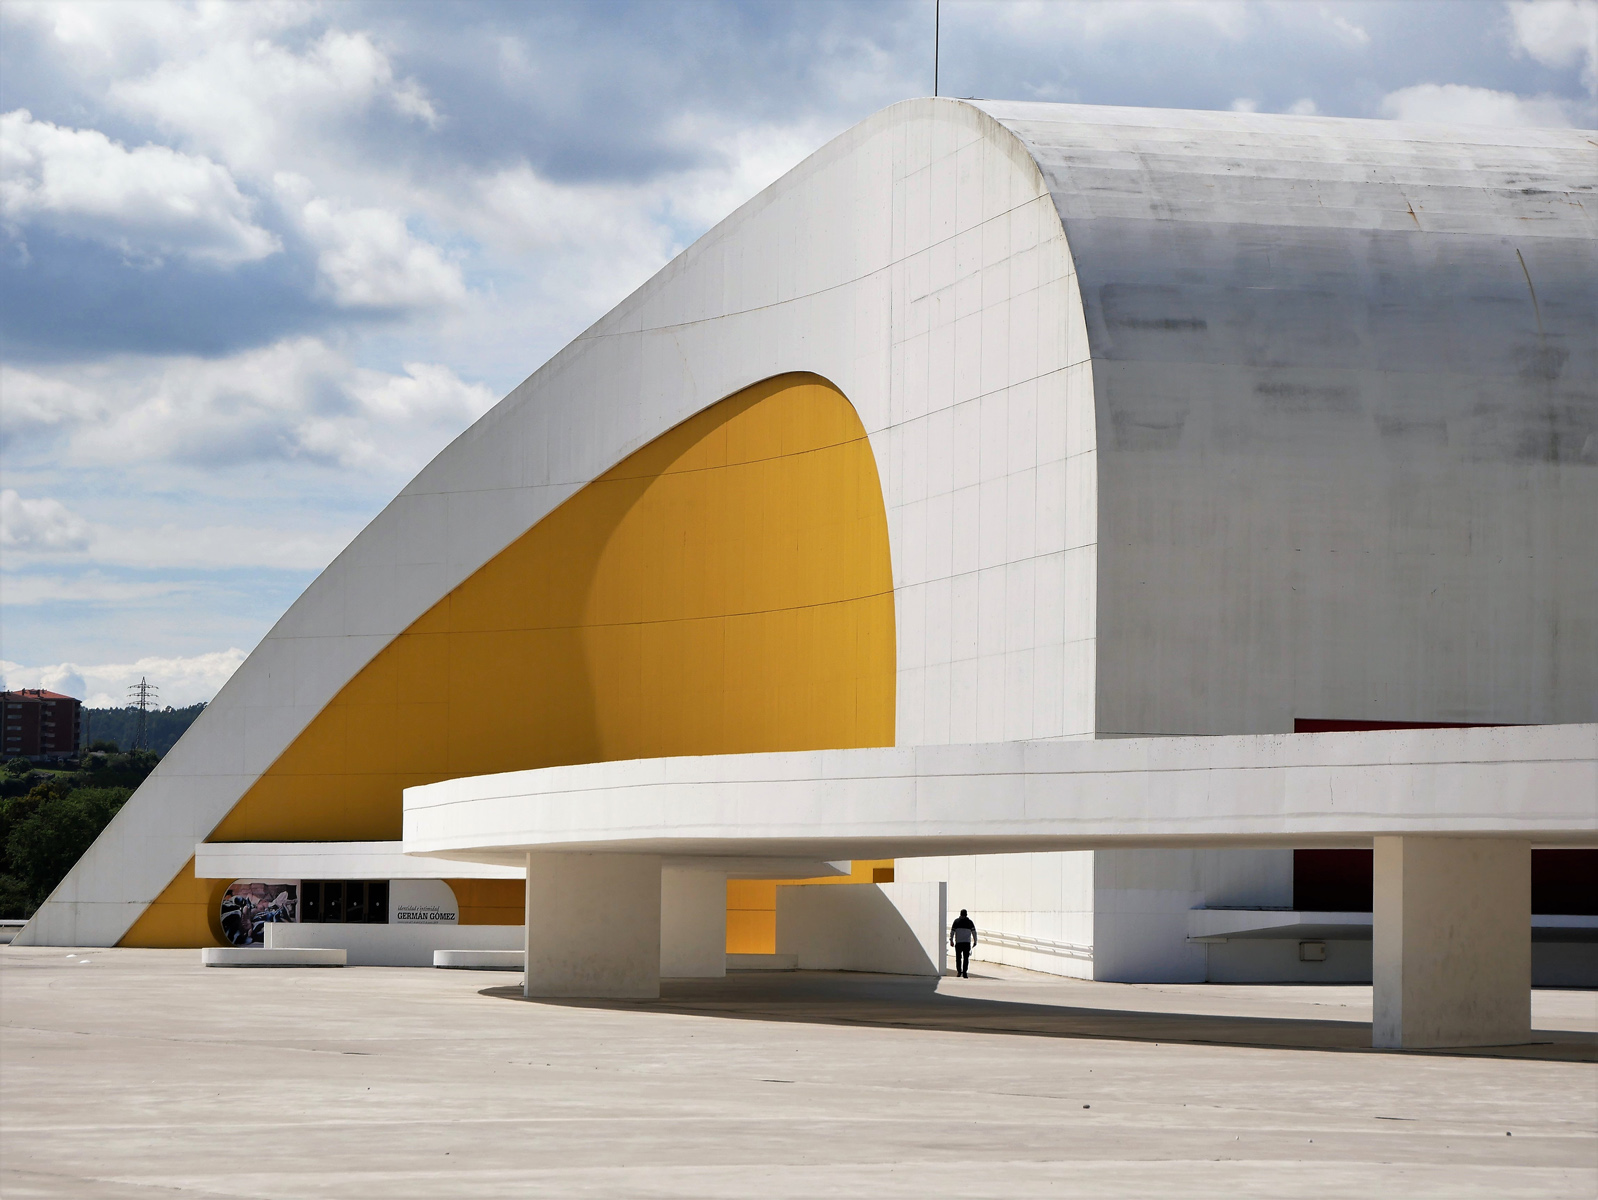 'Niemeyer Centre Aviles' by Peter Woodhouse